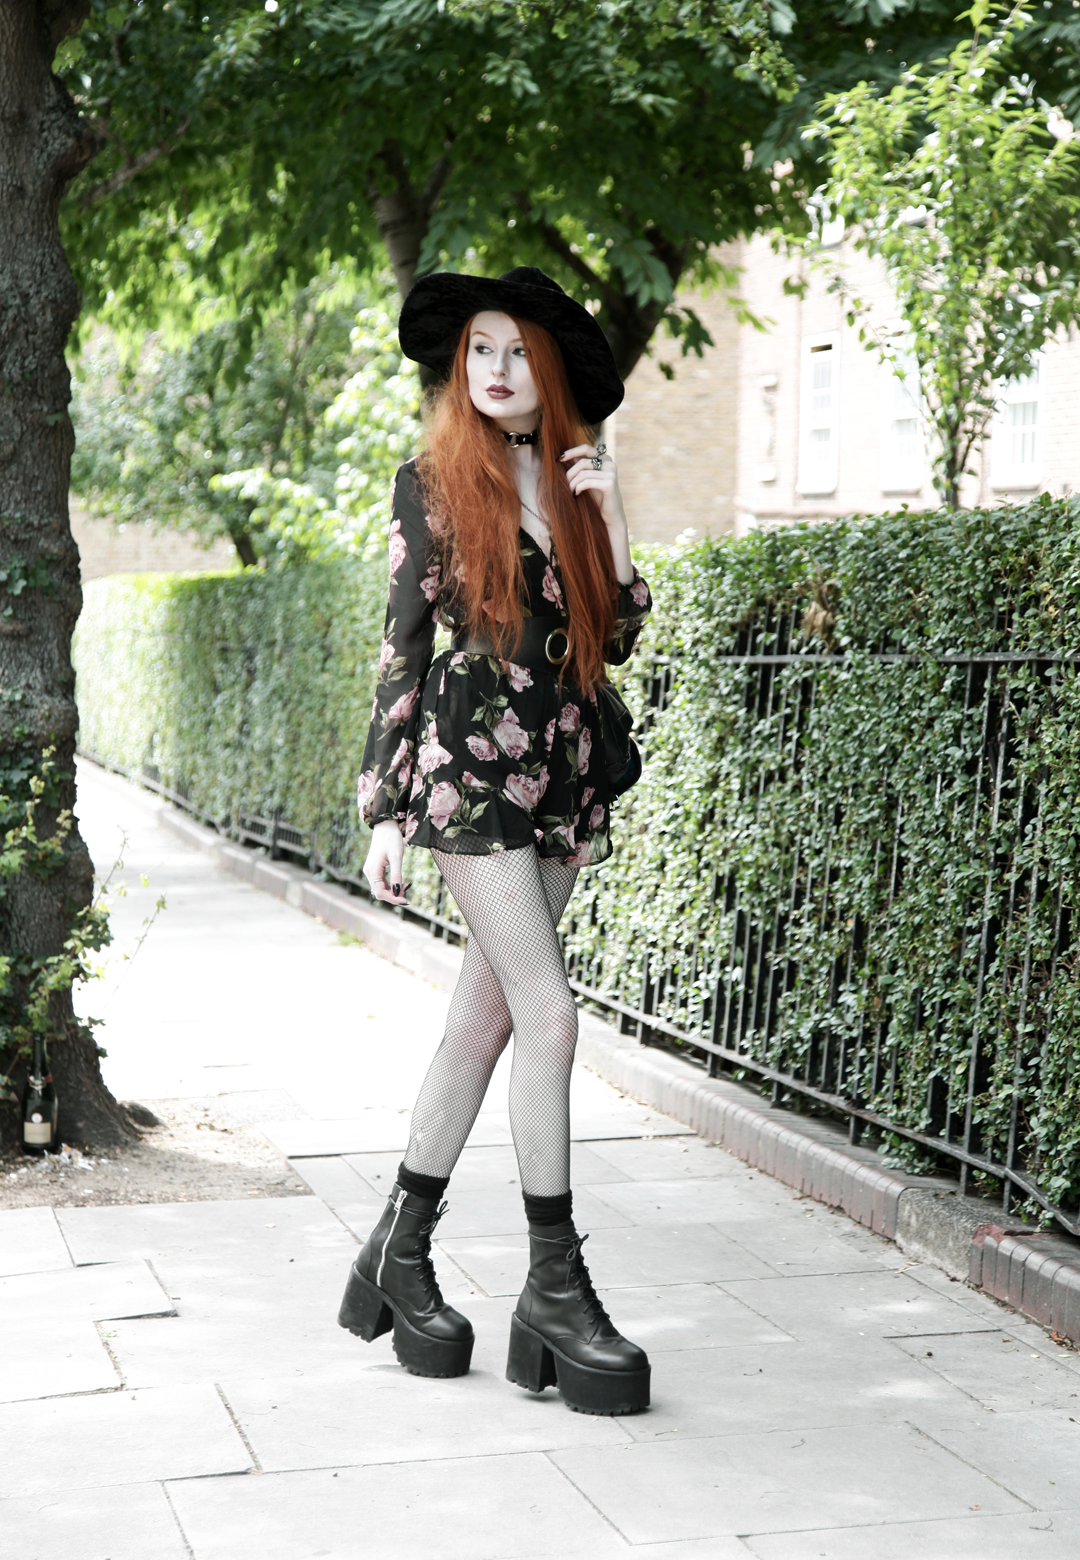 Olivia Emily wears Asos Band Of Gypsies playsuit, Killstar velvet witch brim hat, Zana Bayne Cincher Waist Belt, and Unif Scosche boots